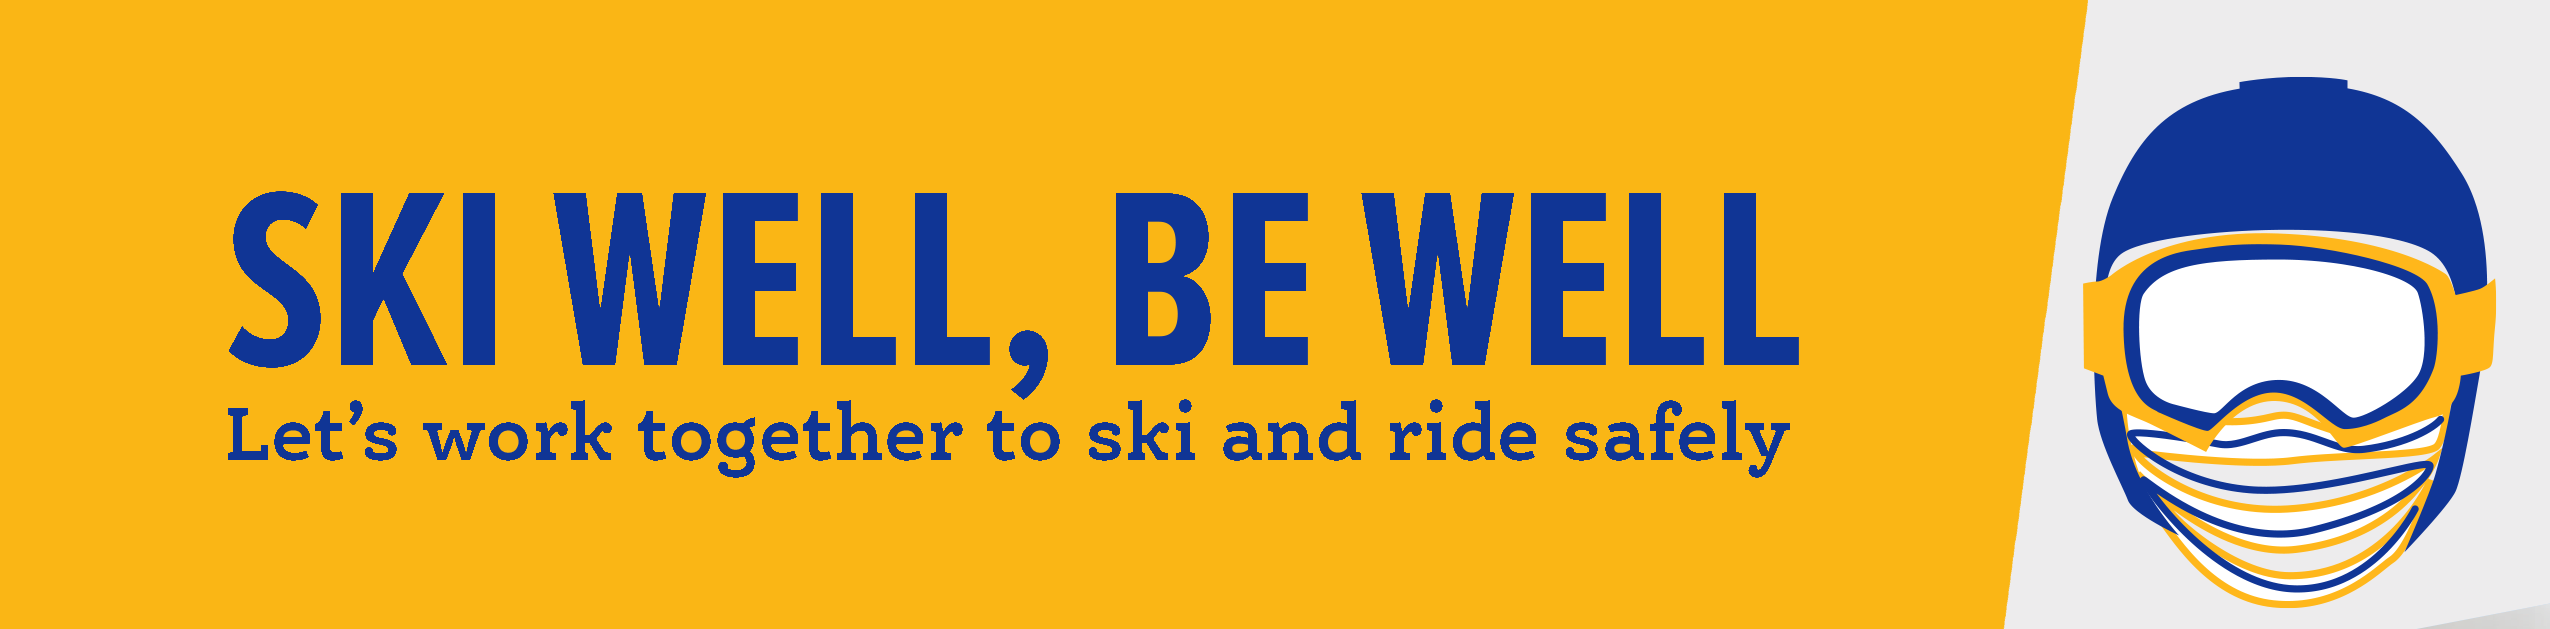 Ski Well, Be Well Let's work together to ski and ride safely